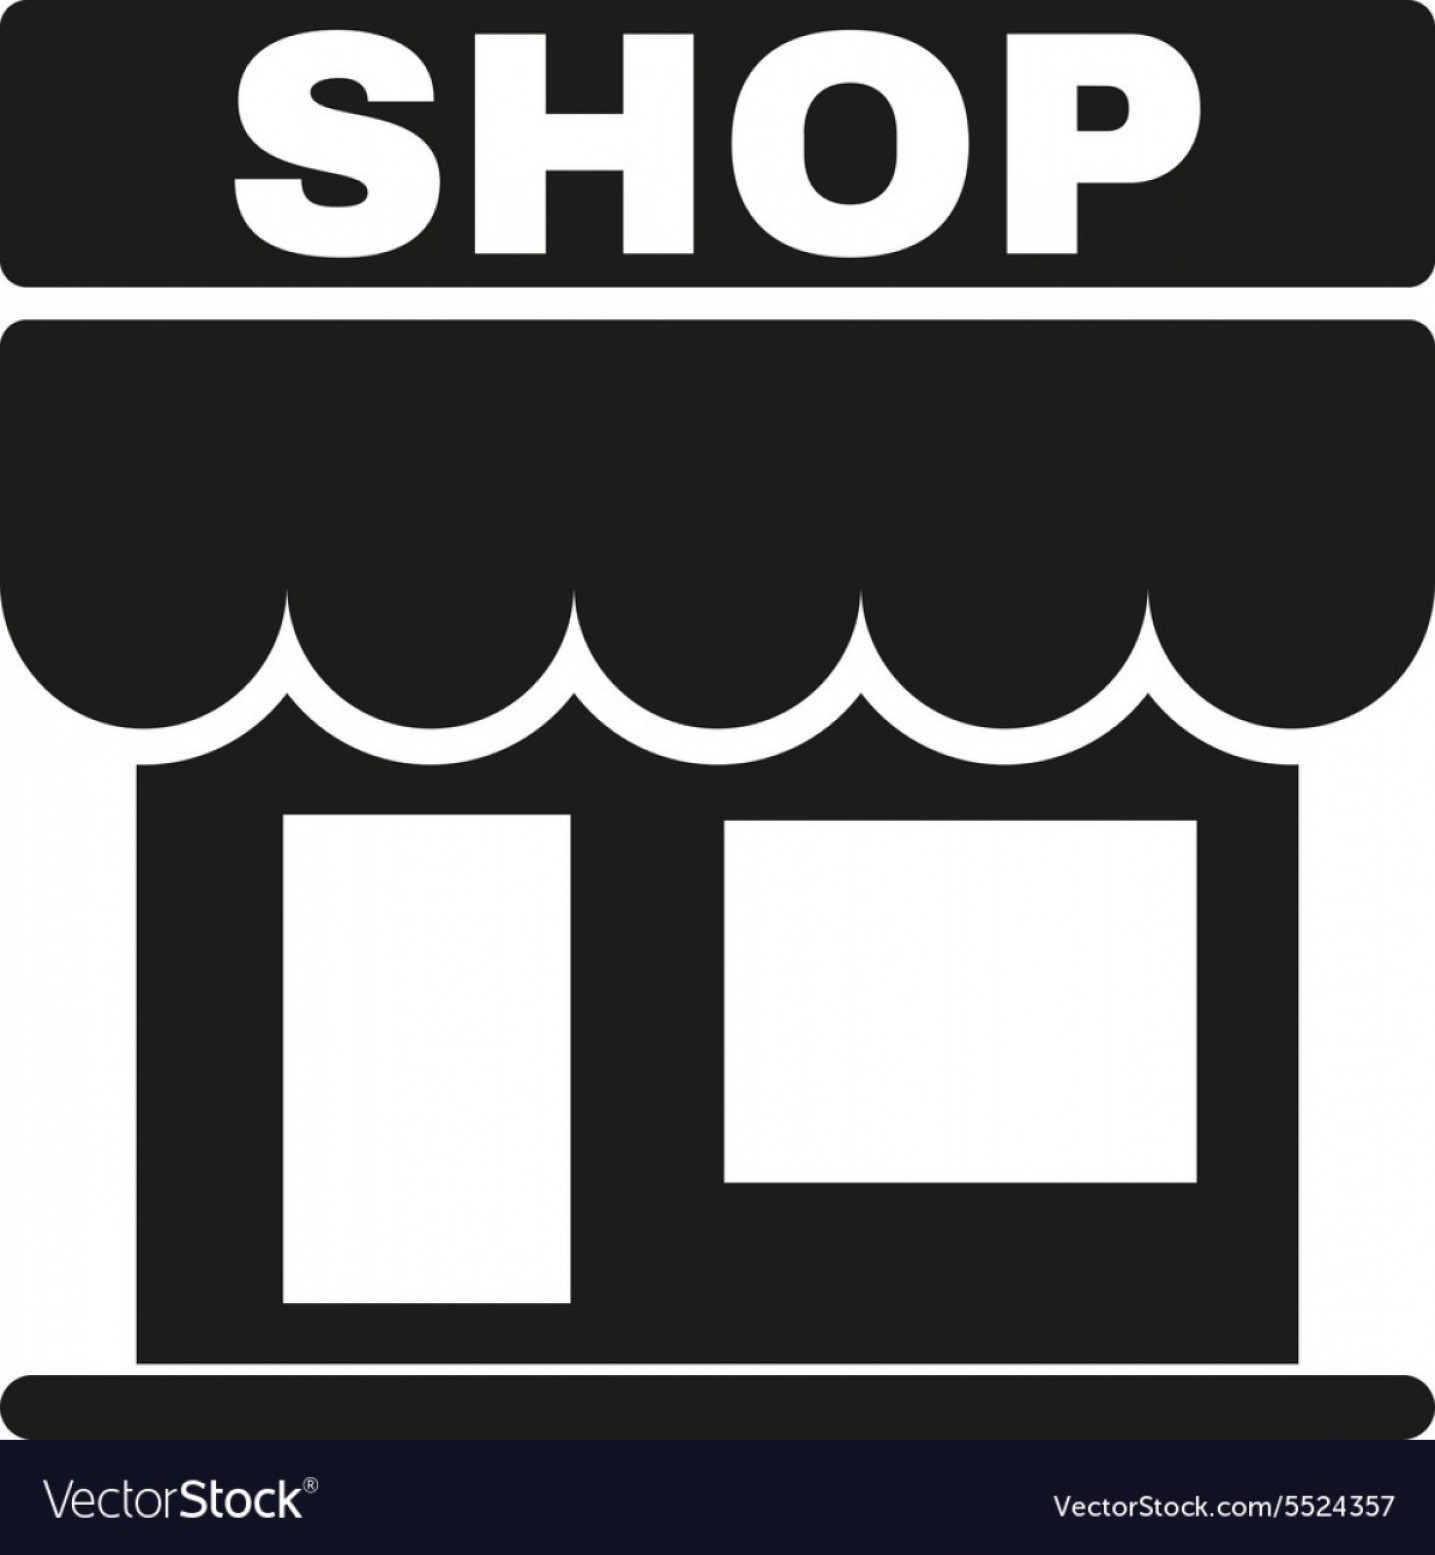 1903 Ford Motor Company Vector Art: The Shop Icon Store Symbol Flat Vector